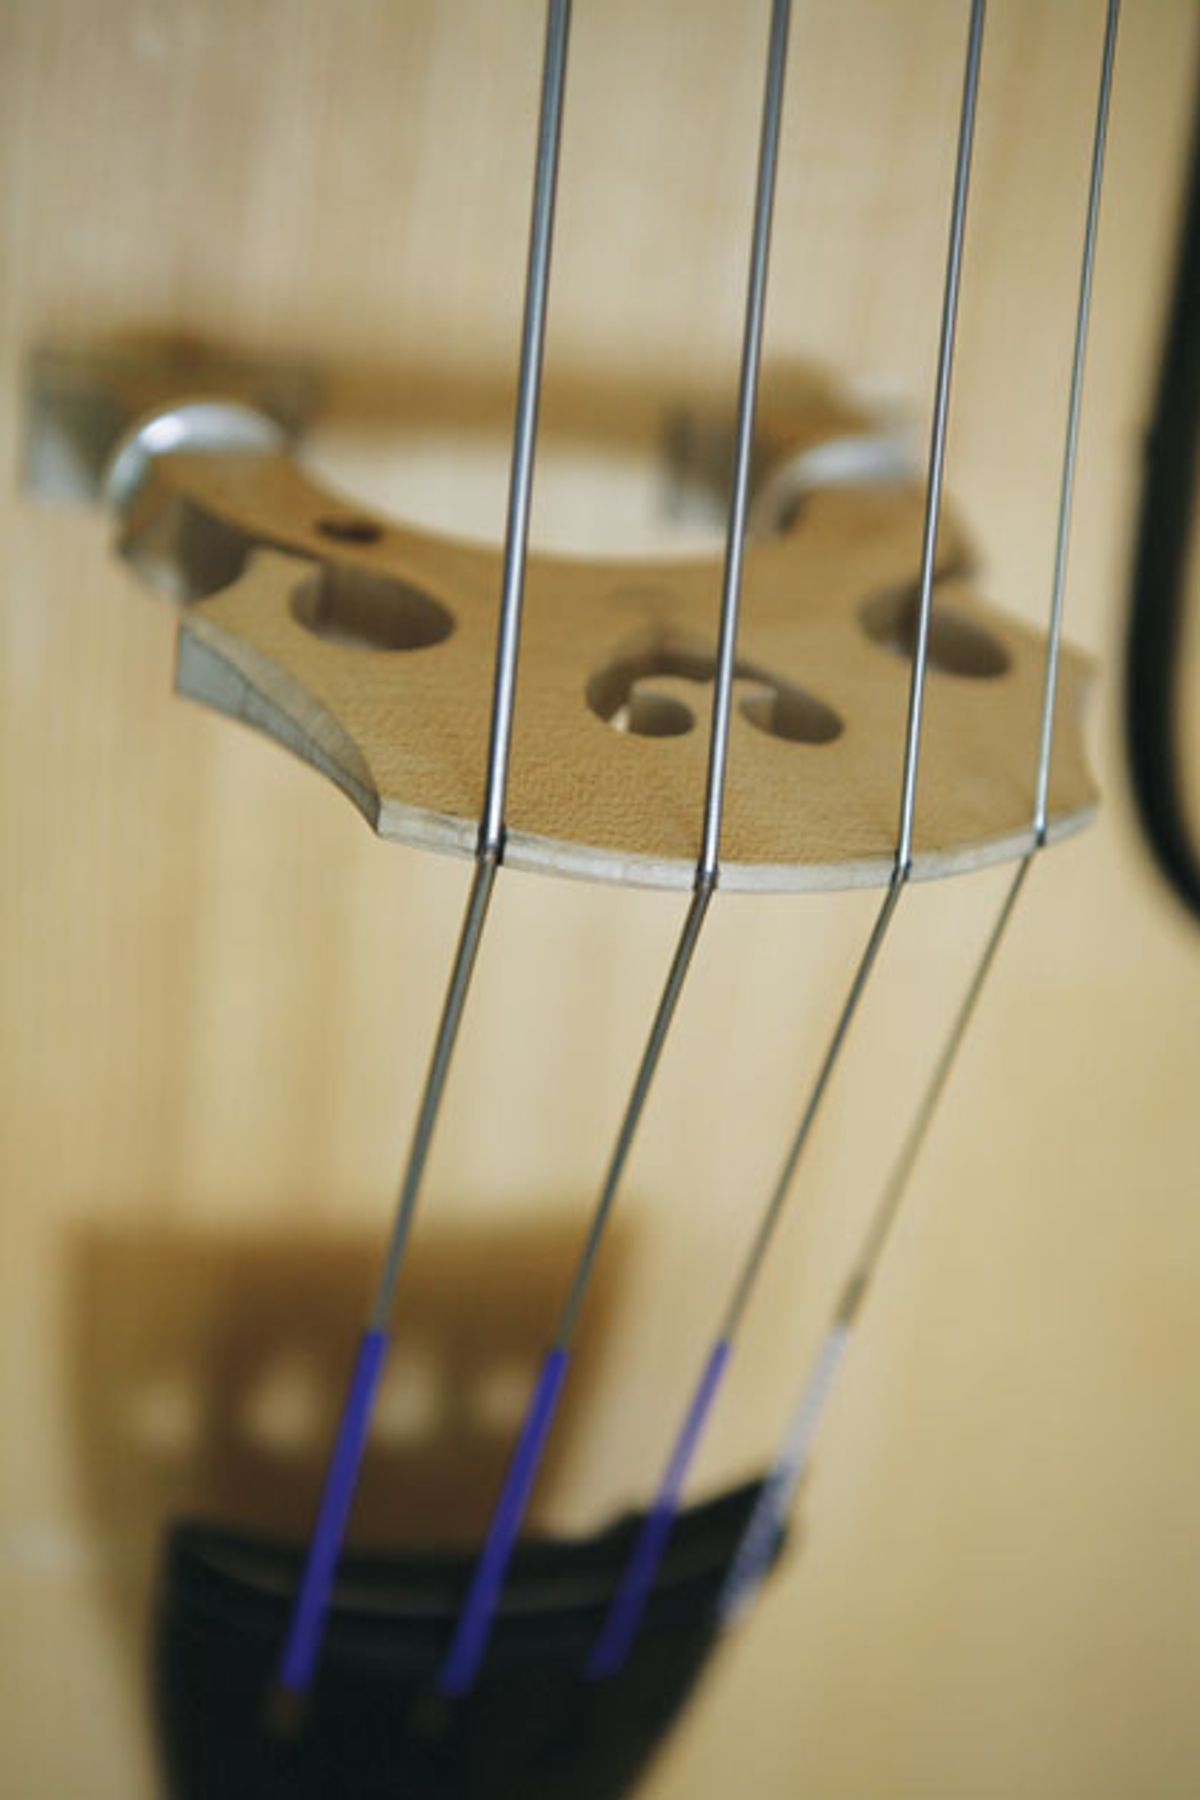 Bass Bench: Cold Facts About Strings